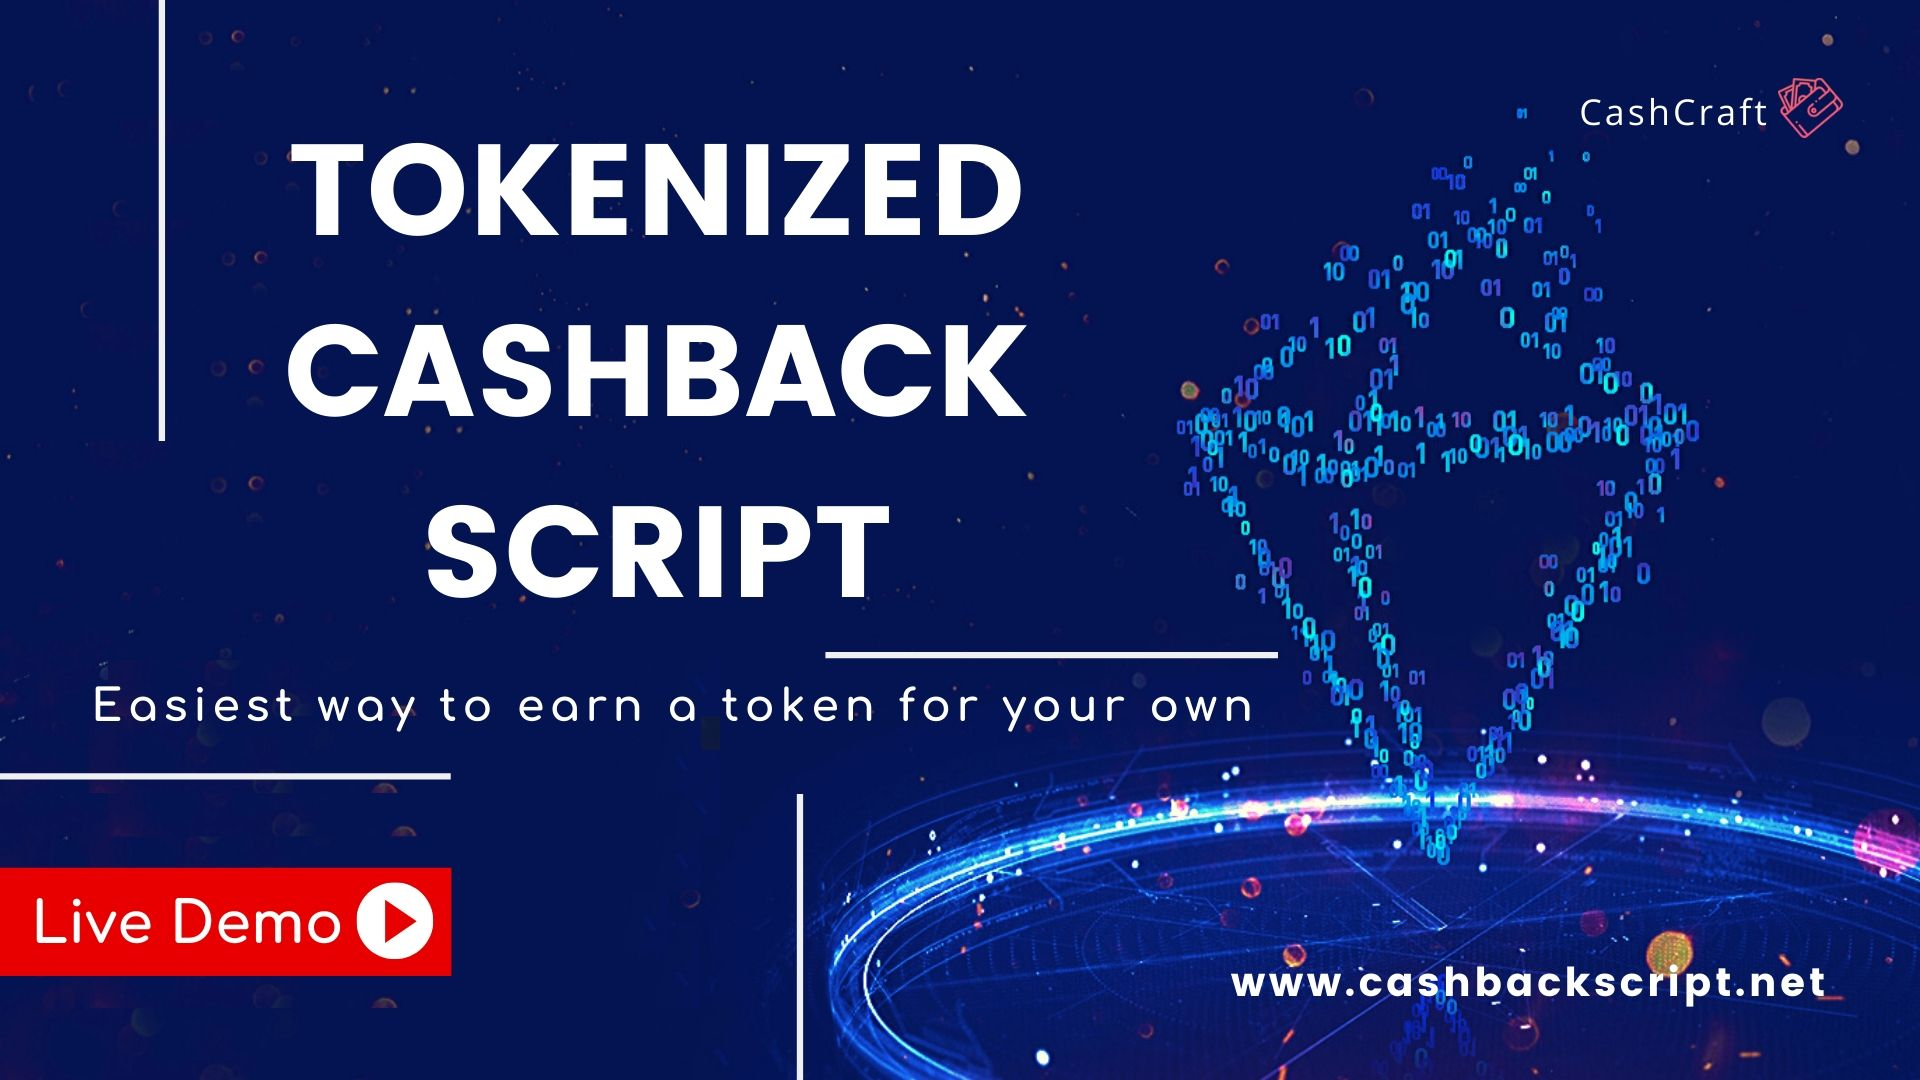 How Token can be a Game changer in Cashback Business?